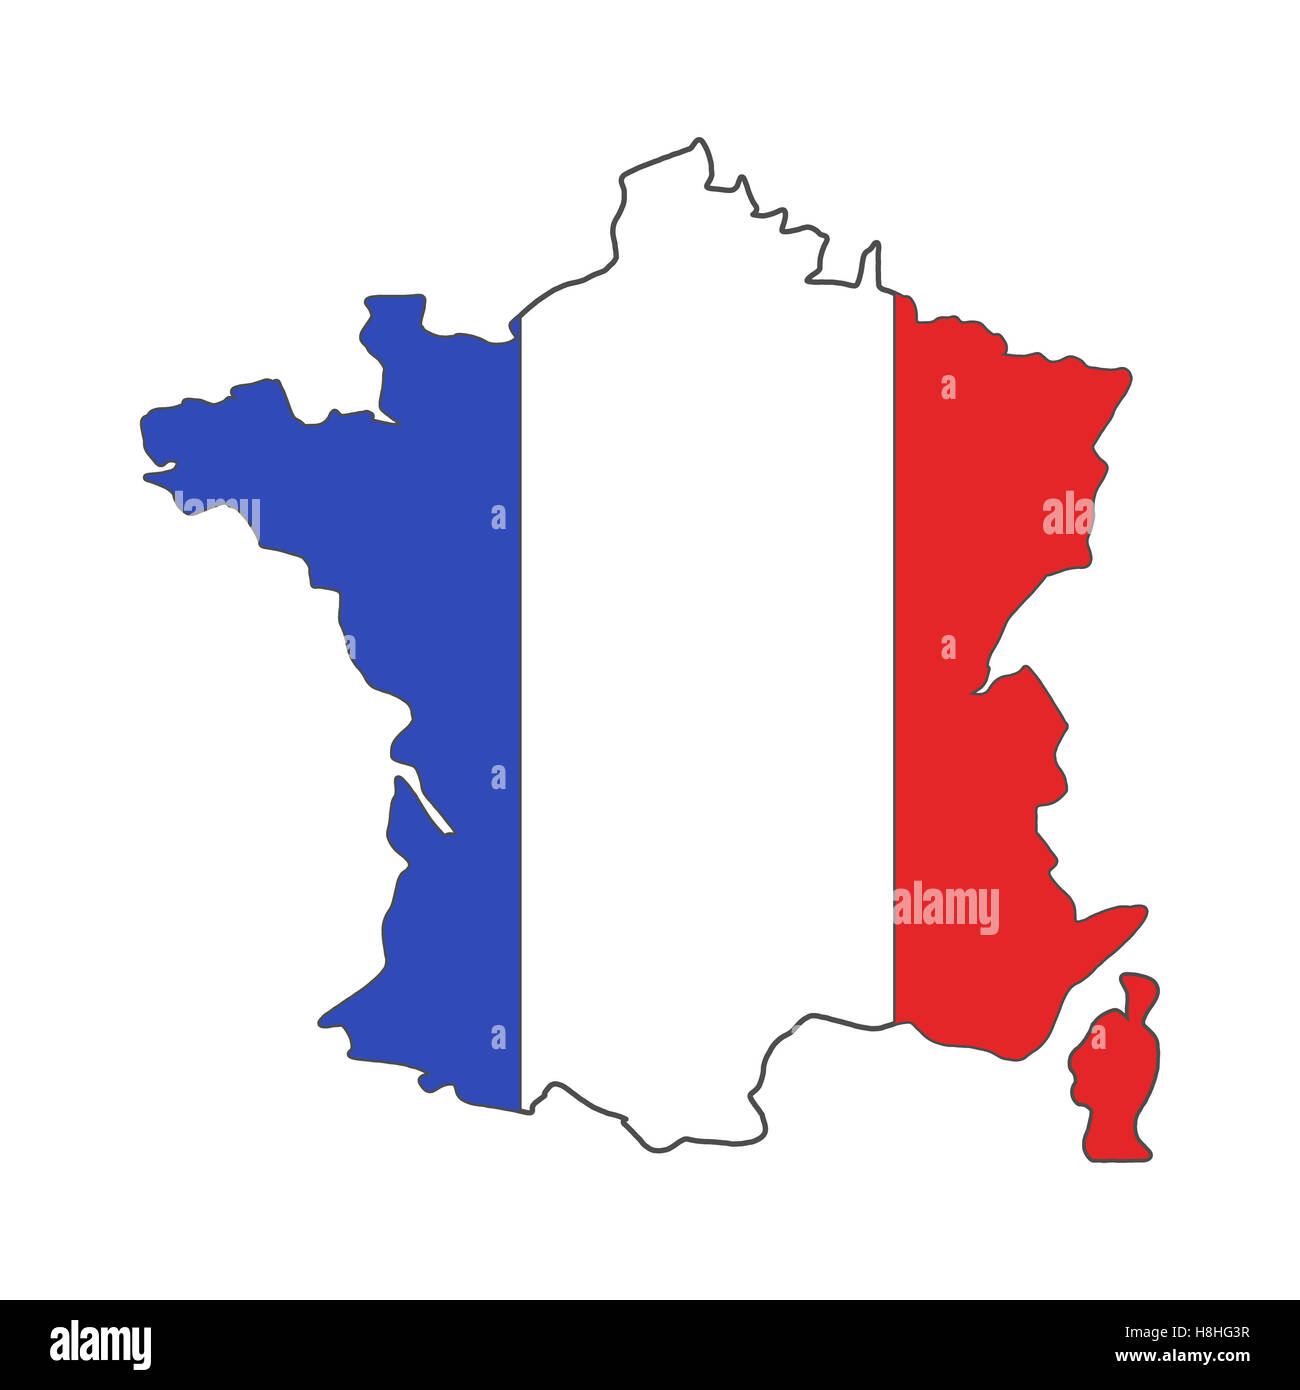 France euro championship 2016 flag design. Football background. Isolated France map wih official colors. France - Stock Image